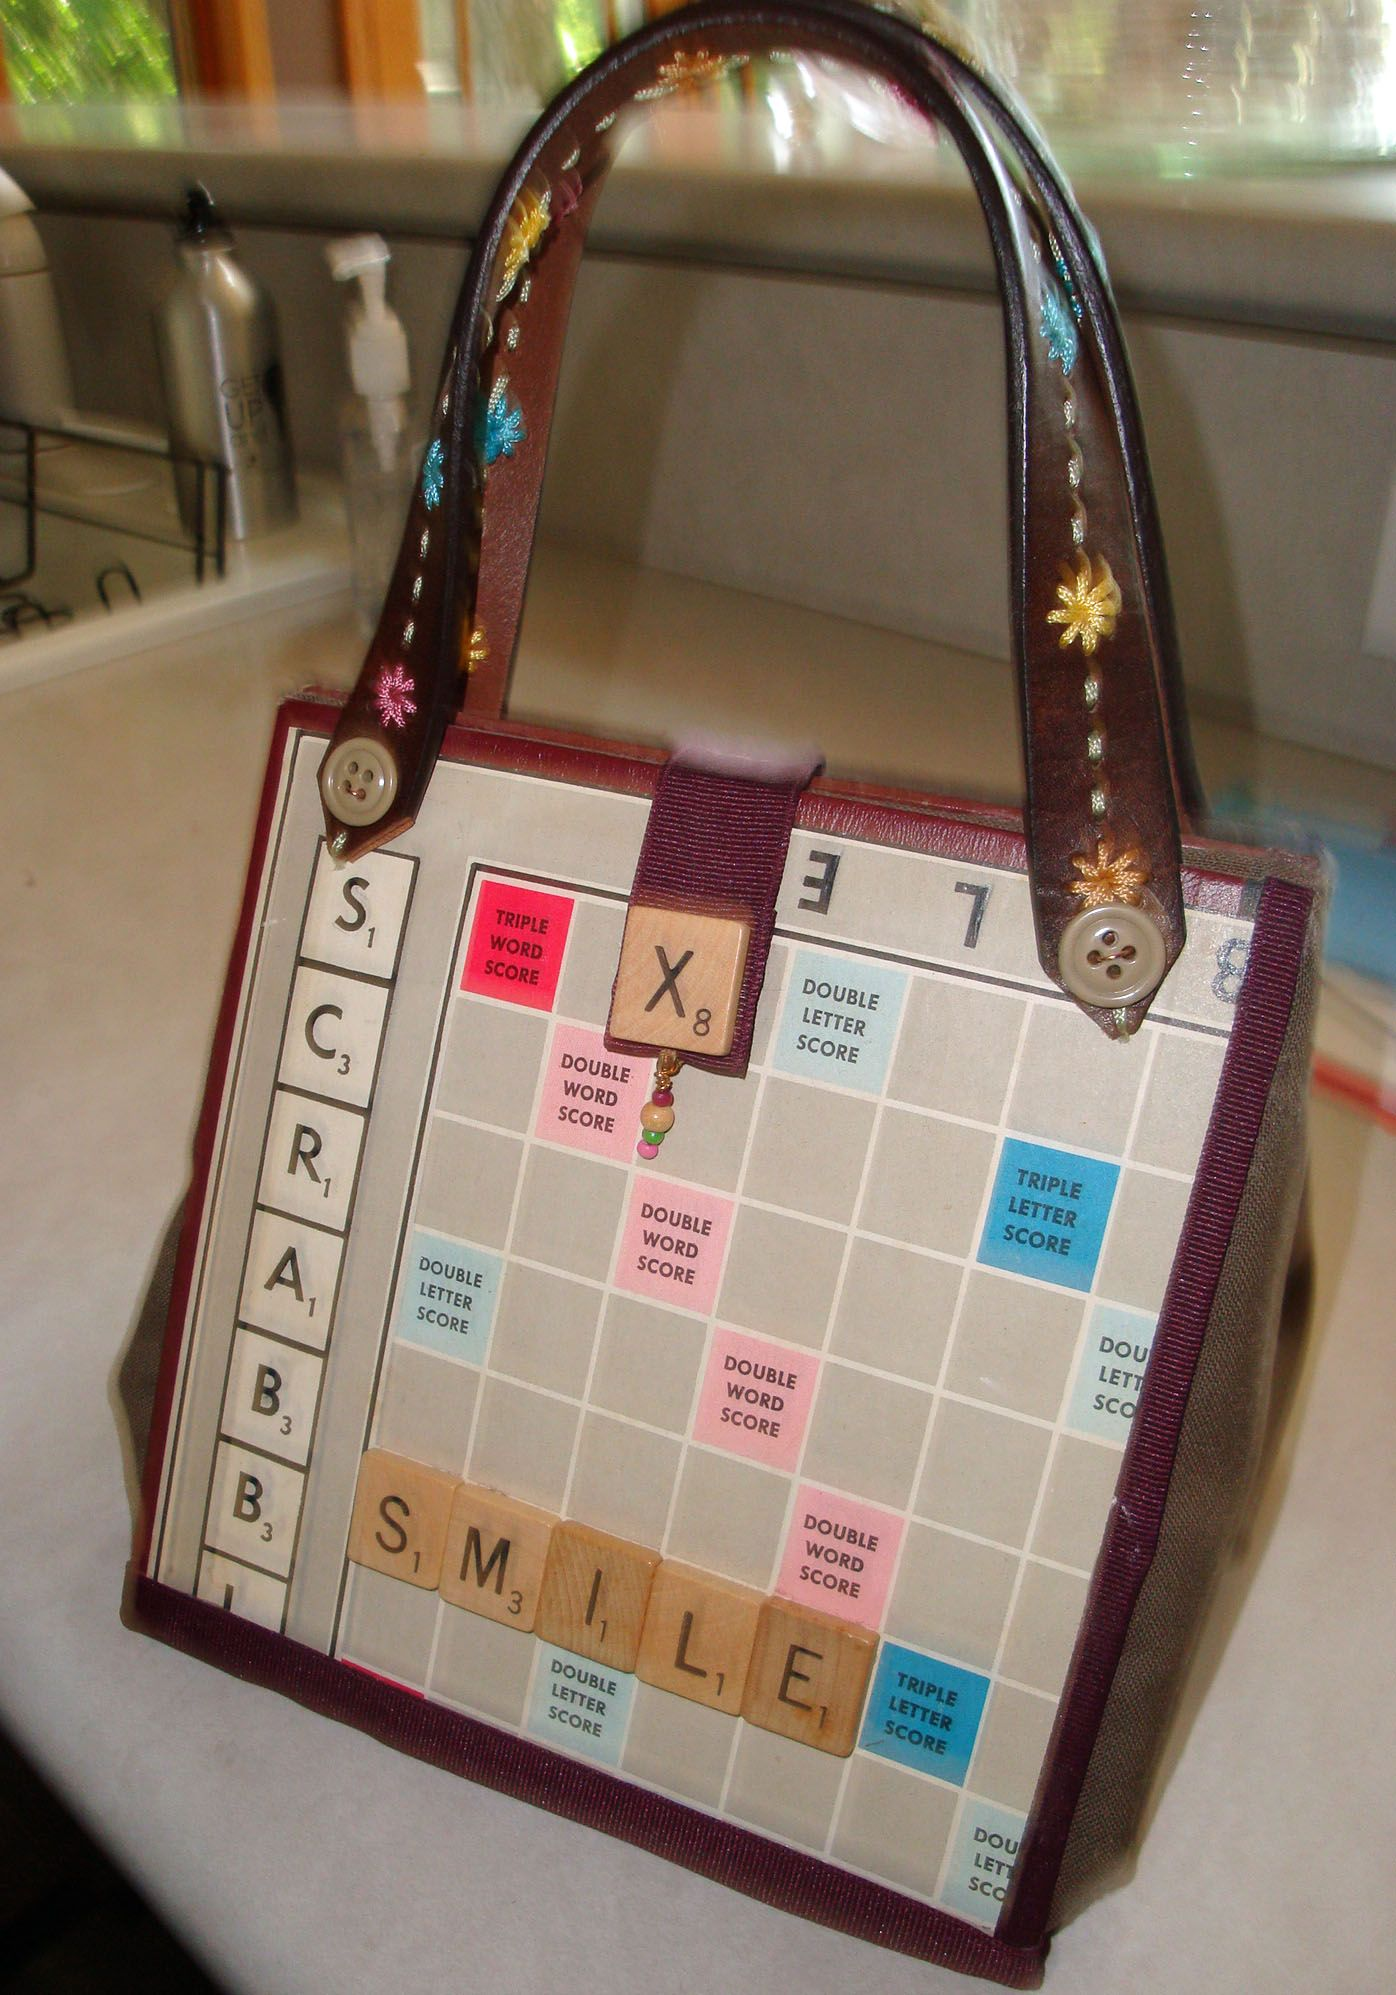 Contemporary purse made from an old scrabble game